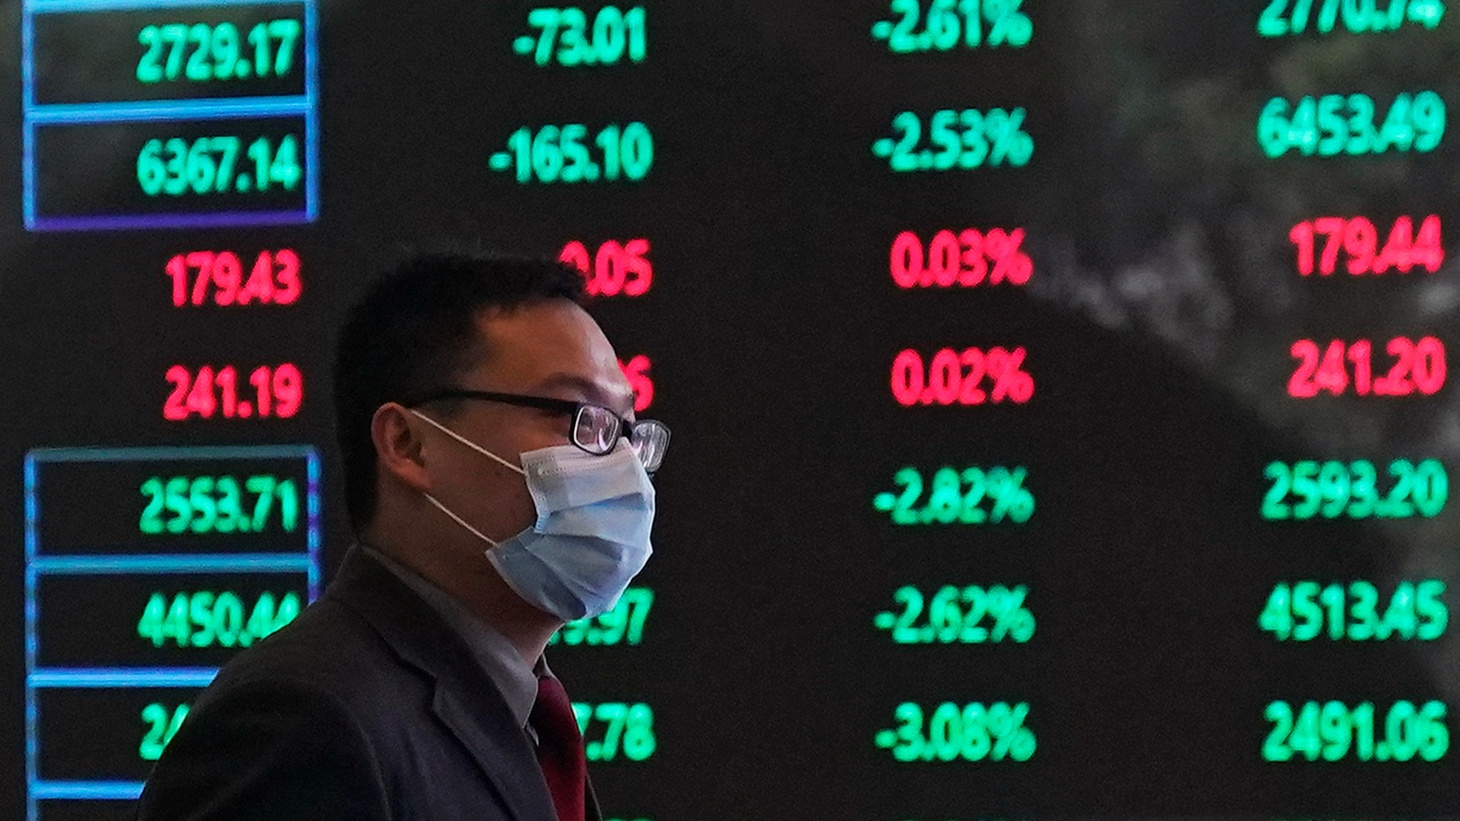 A man wearing a protective mask is seen inside the Shanghai Stock Exchange building, as the country is hit by a new coronavirus outbreak, at the Pudong financial district in Shanghai, China February 28, 2020.